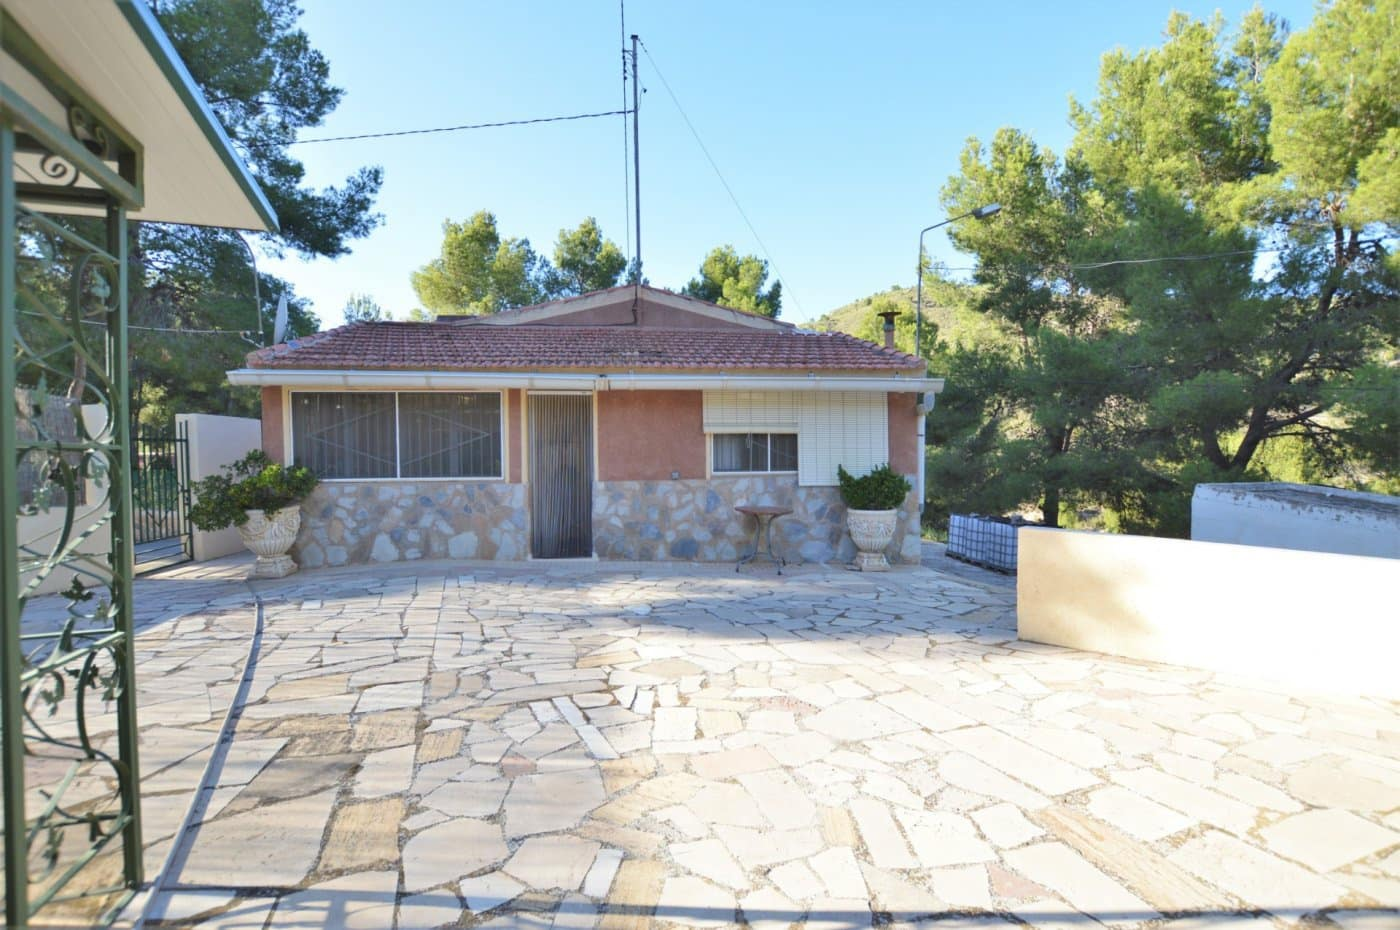 4 bedroom Finca/Country House for sale in Petrel / Petrer - € 152,995 (Ref: 5340459)